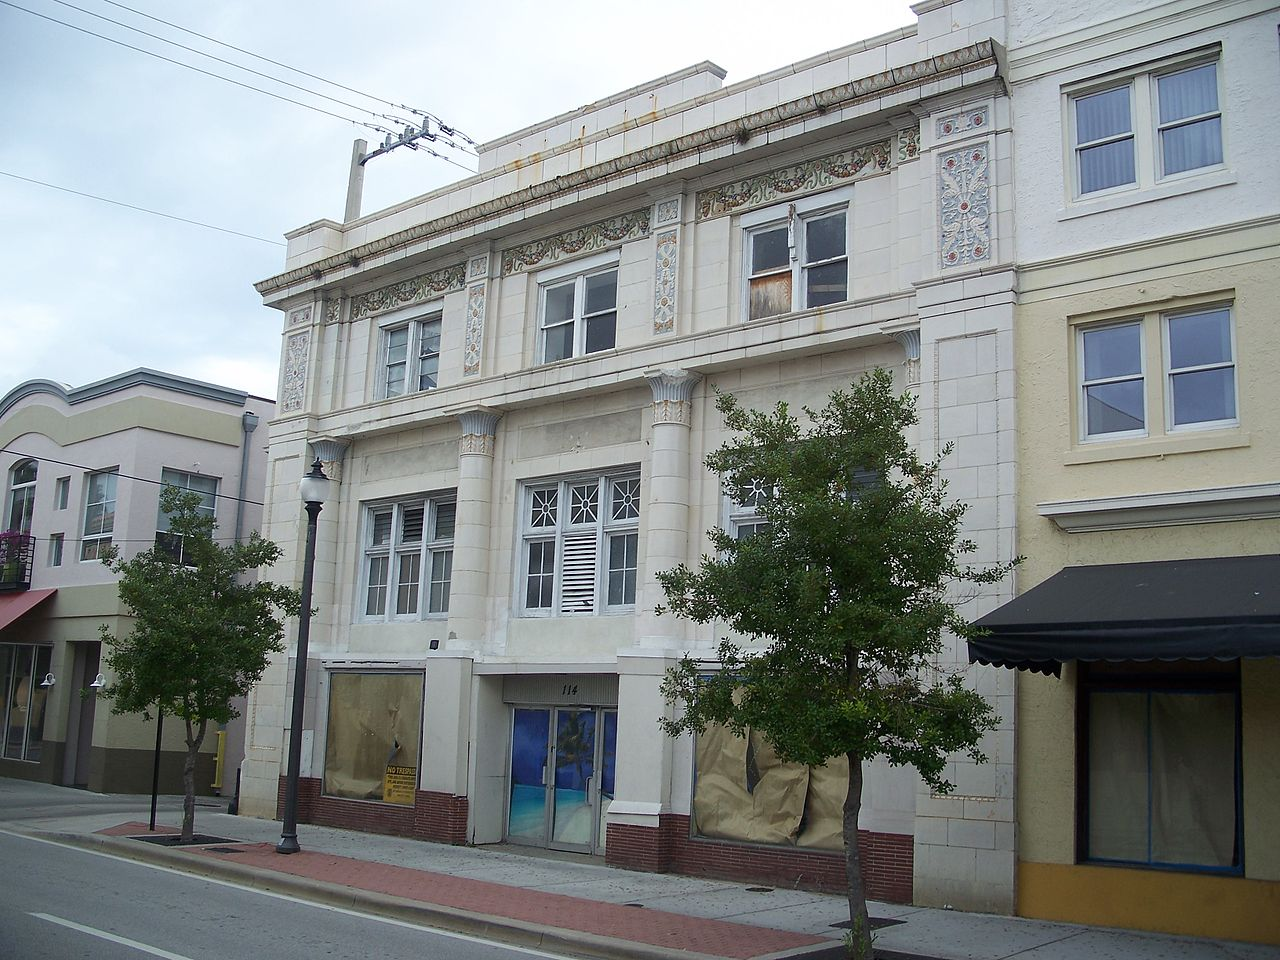 The old American National Bank Building was constructed in 1921.